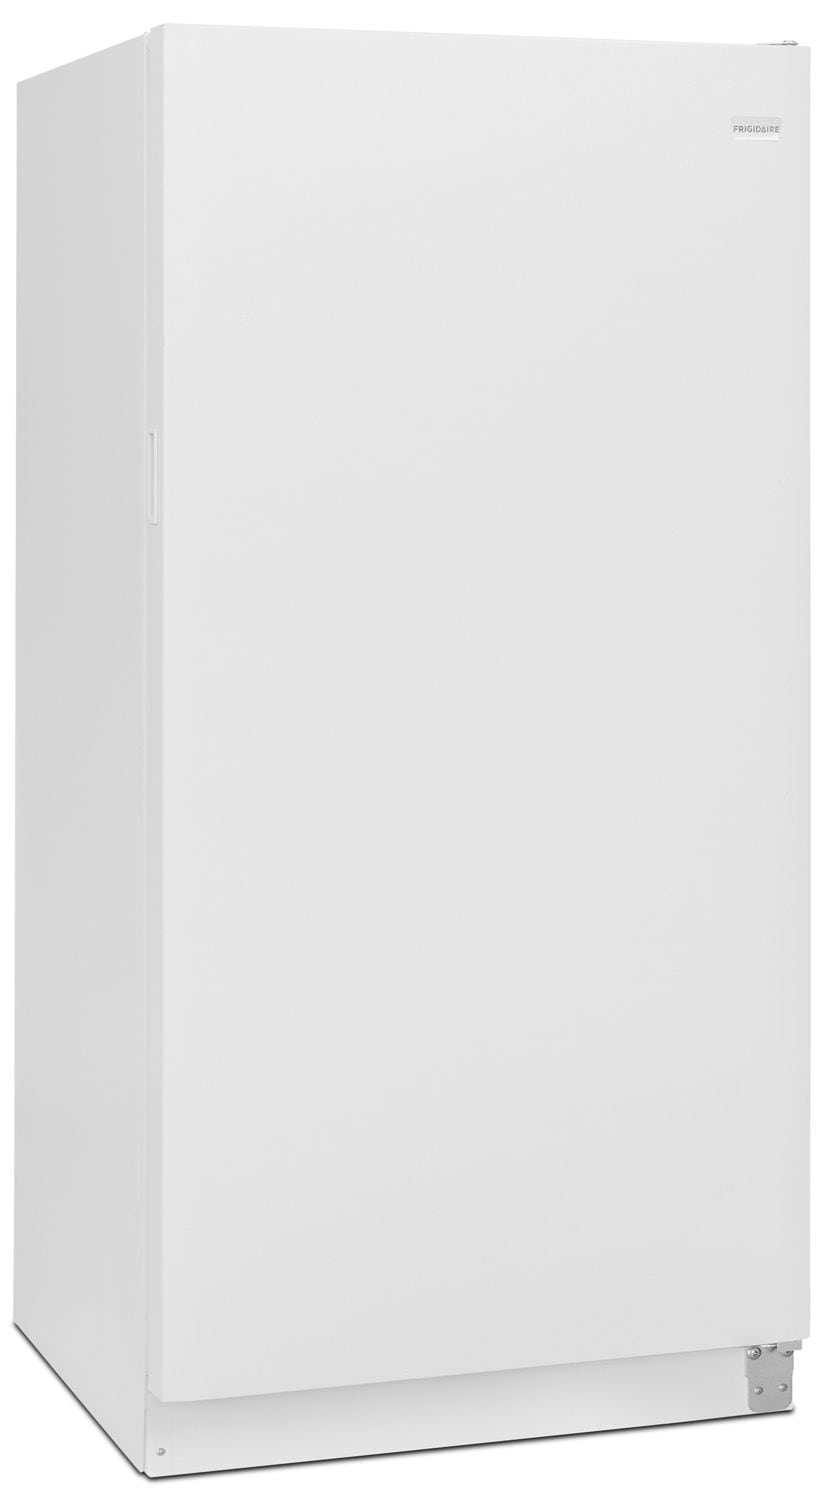 Refrigerators and Freezers - Frigidaire 12.5 Cu. Ft. Upright Freezer - White